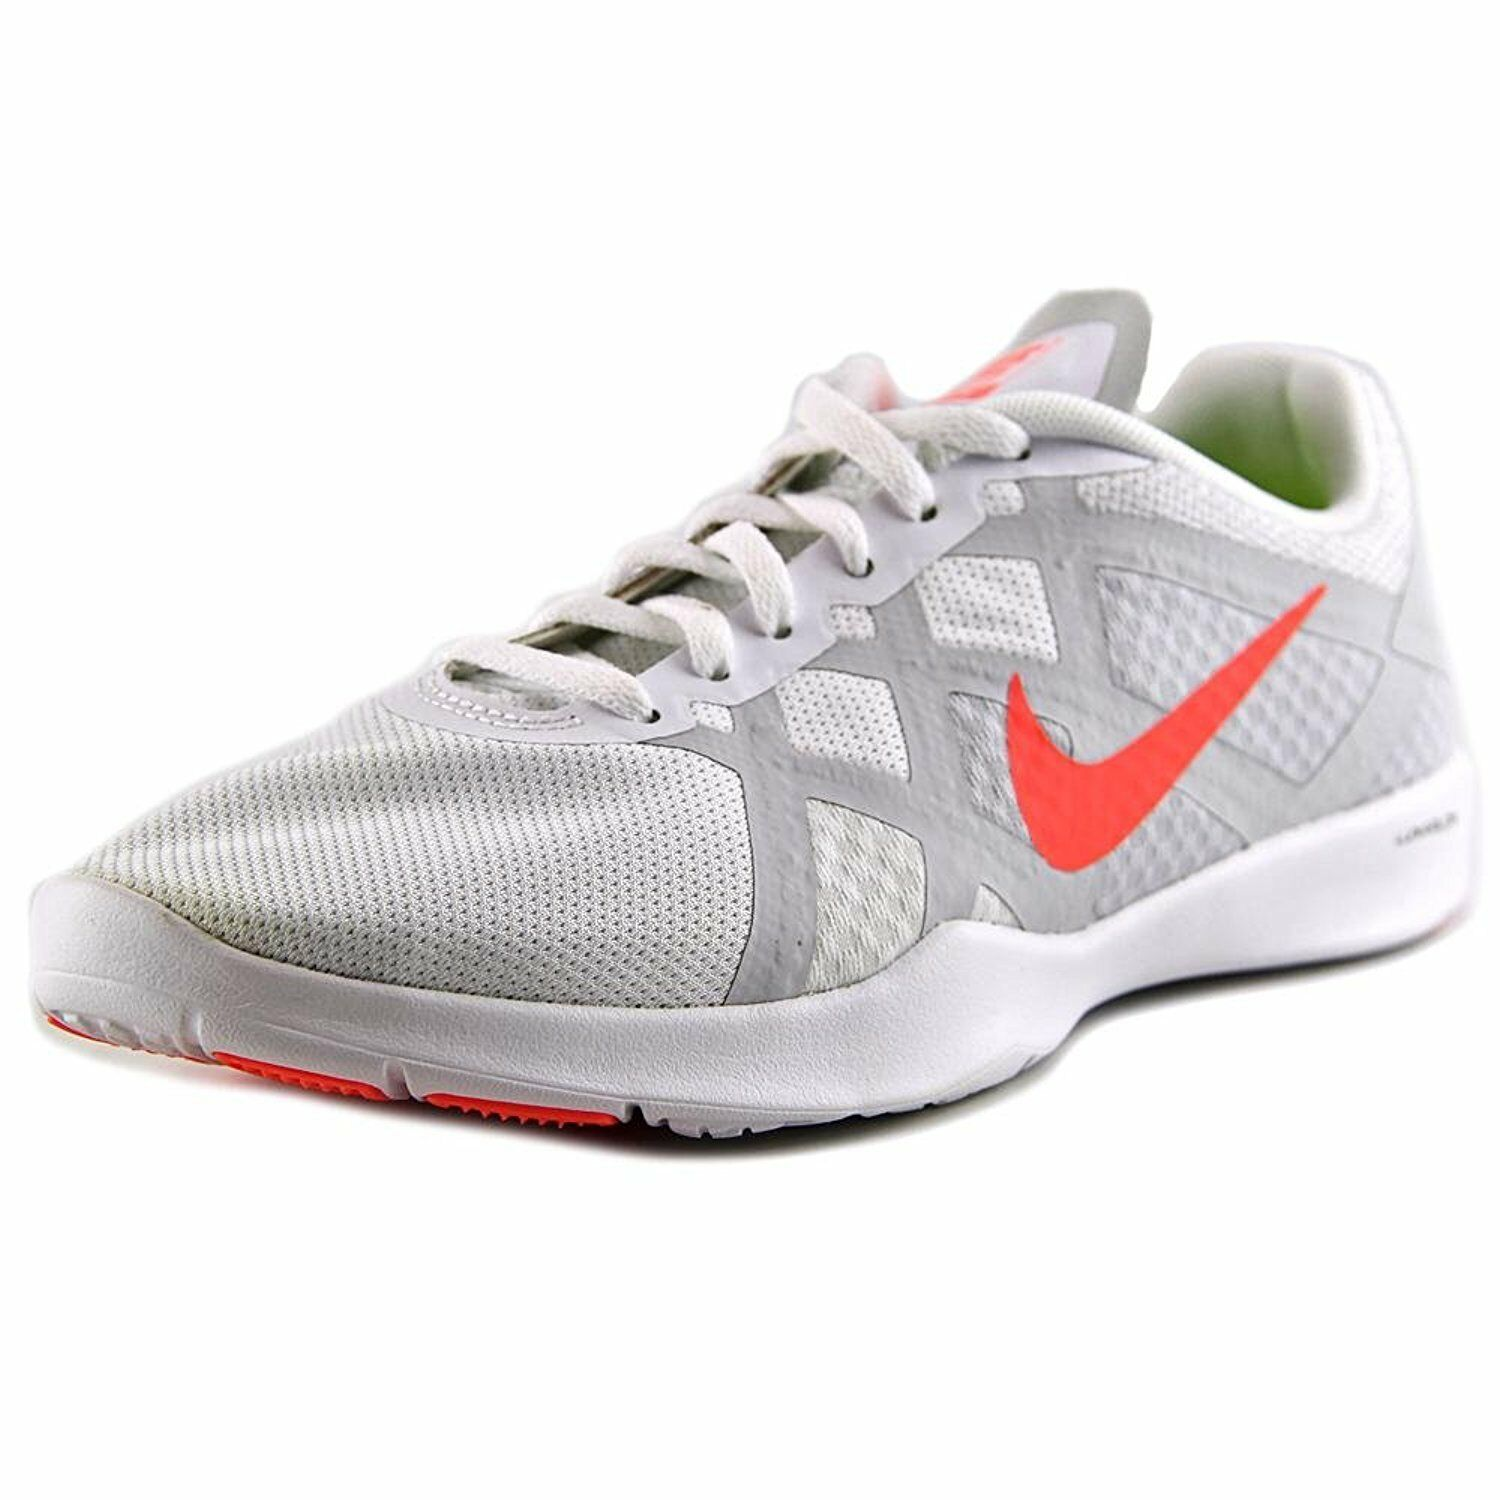 Women's Nike Lunar Lux TR Training Shoes, 749183 102 Sizes 6-10 White/Bright Man